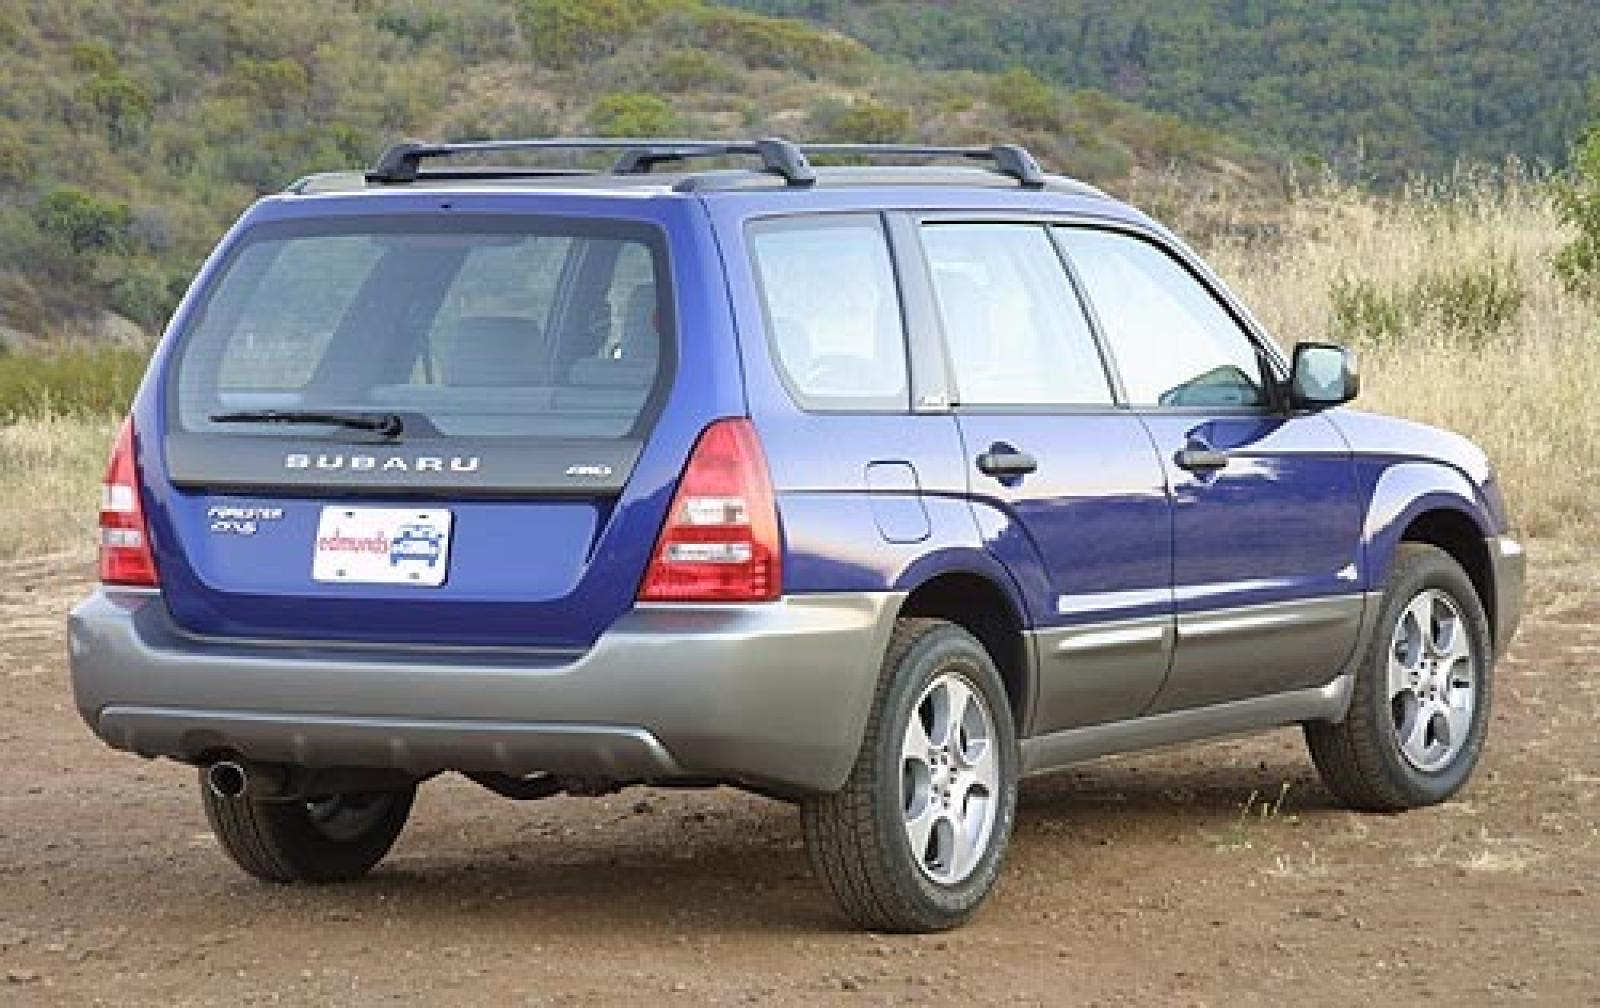 2003 Subaru Forester Information And Photos Zombiedrive